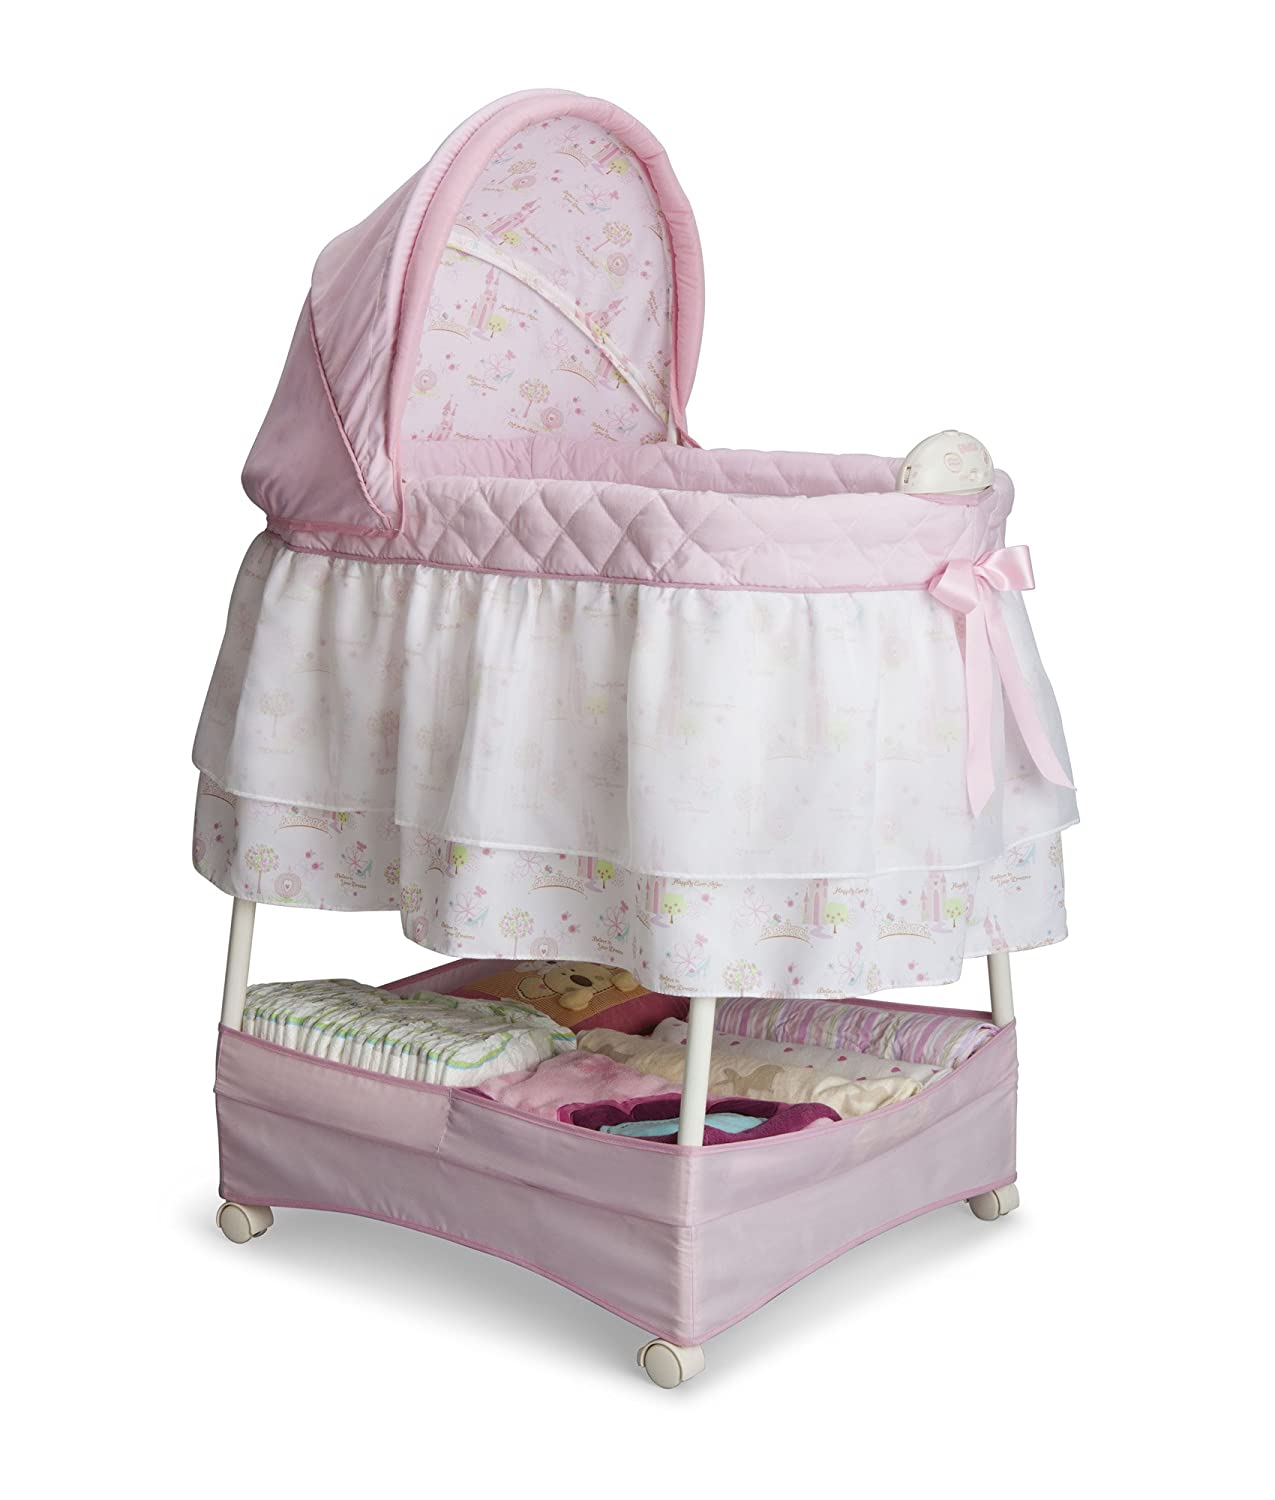 Delta Children Gliding Bassinet, Disney Minnie Mouse Boutique 27202-668